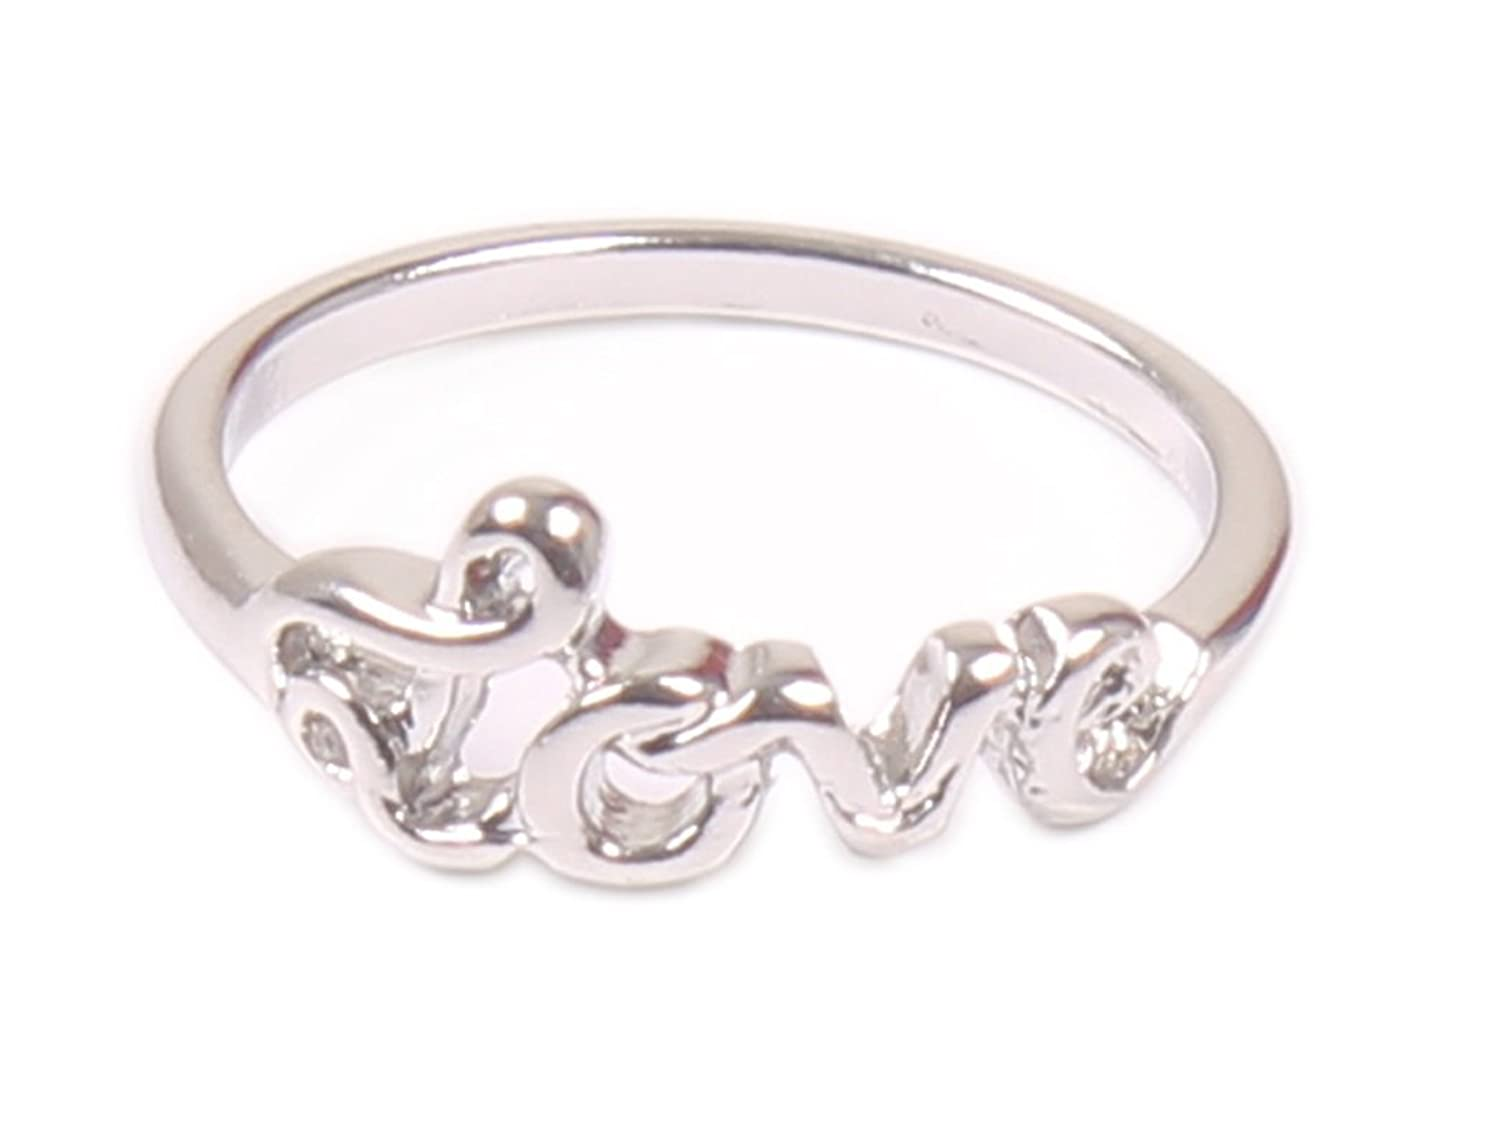 Access-O-Risingg Silver Metal Ring For Girls: Amazon.in: Jewellery